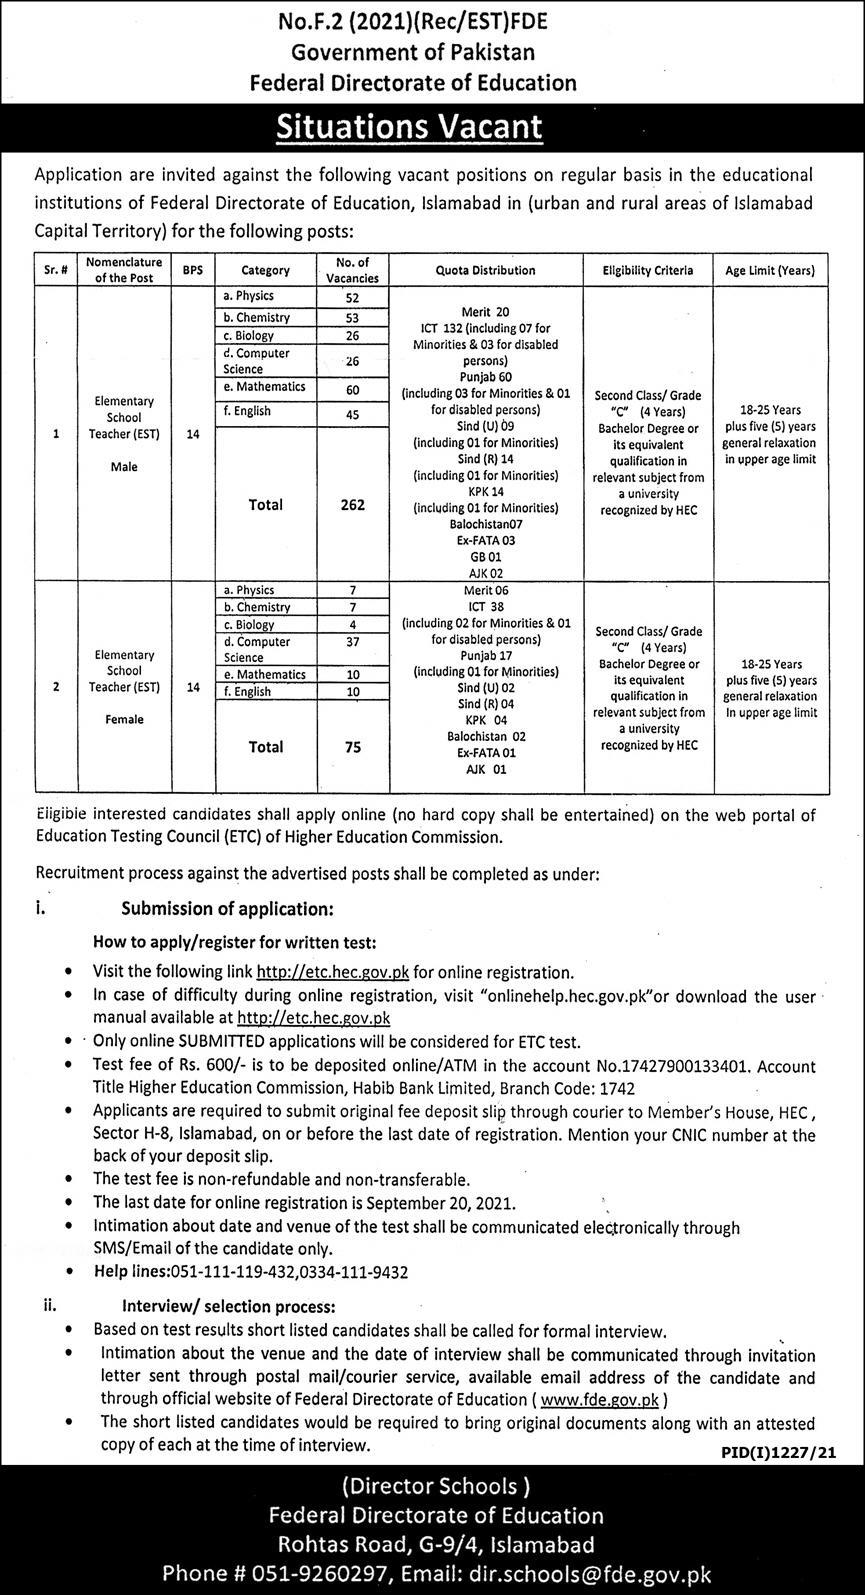 Federal Directorate of Education Jobs 2021 for Elementary School Teacher EST